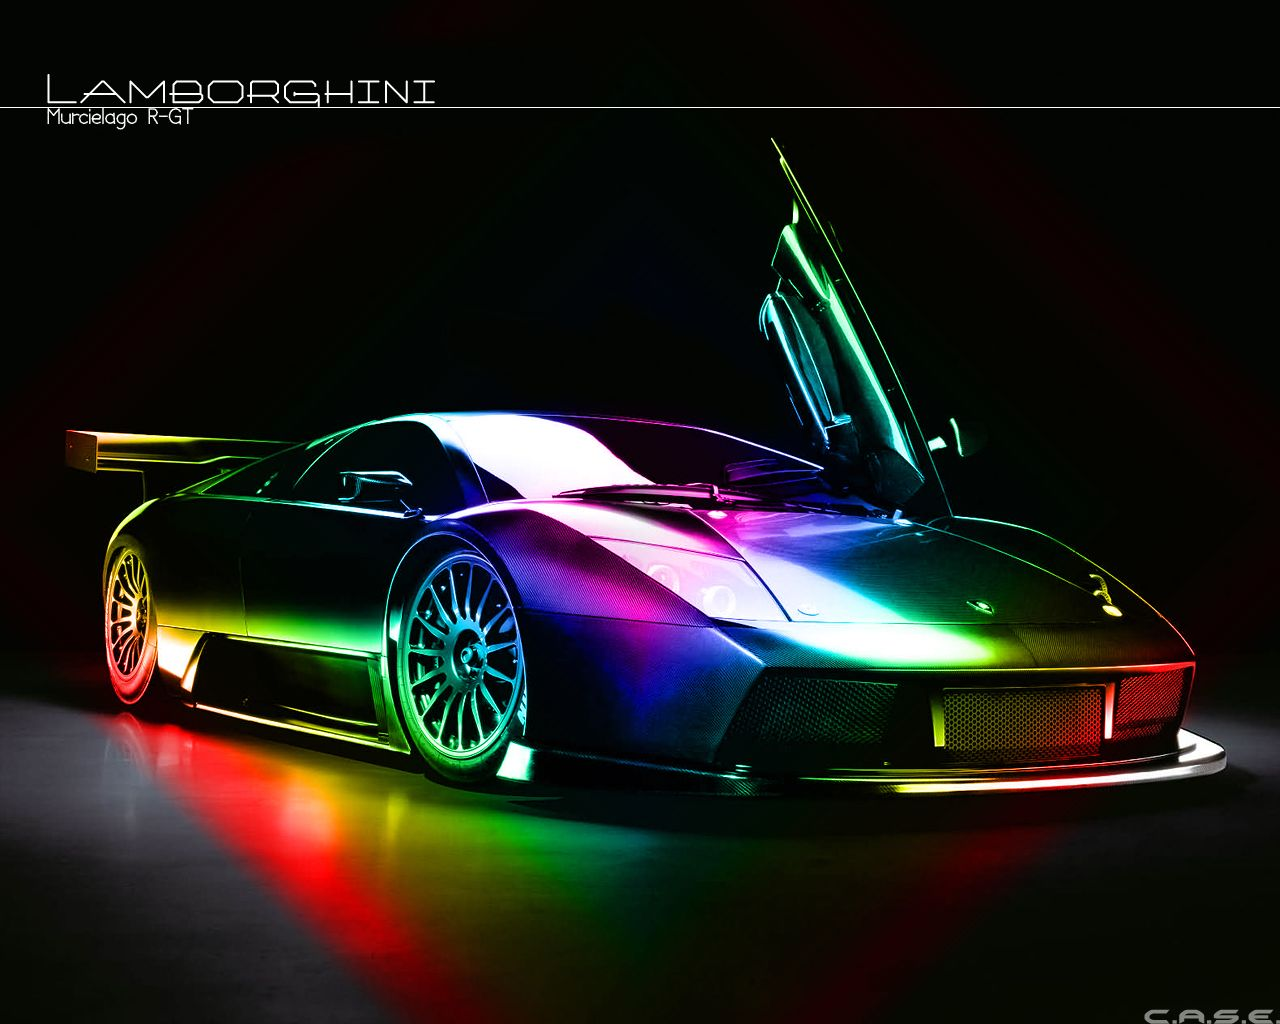 Rainbow Wallpaper Galaxy Lamborghini